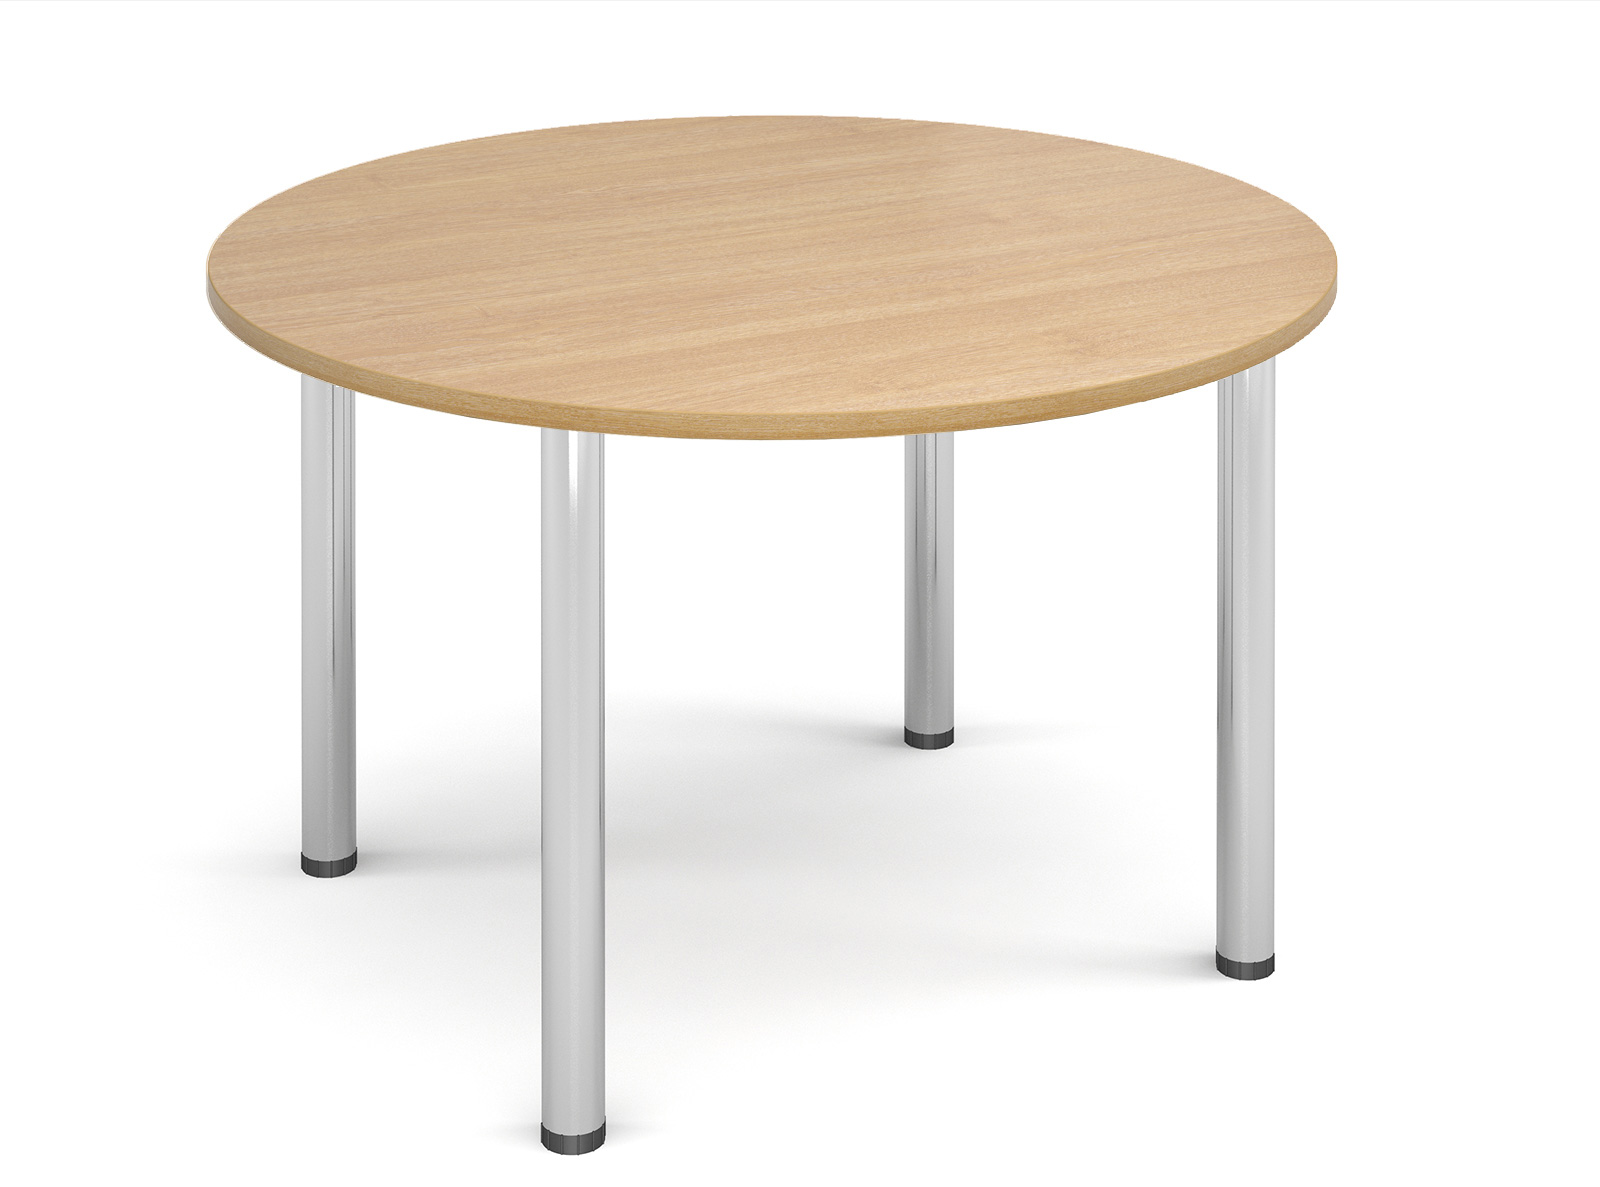 1000mm diameter Top + Chrome radial Legs - Oak